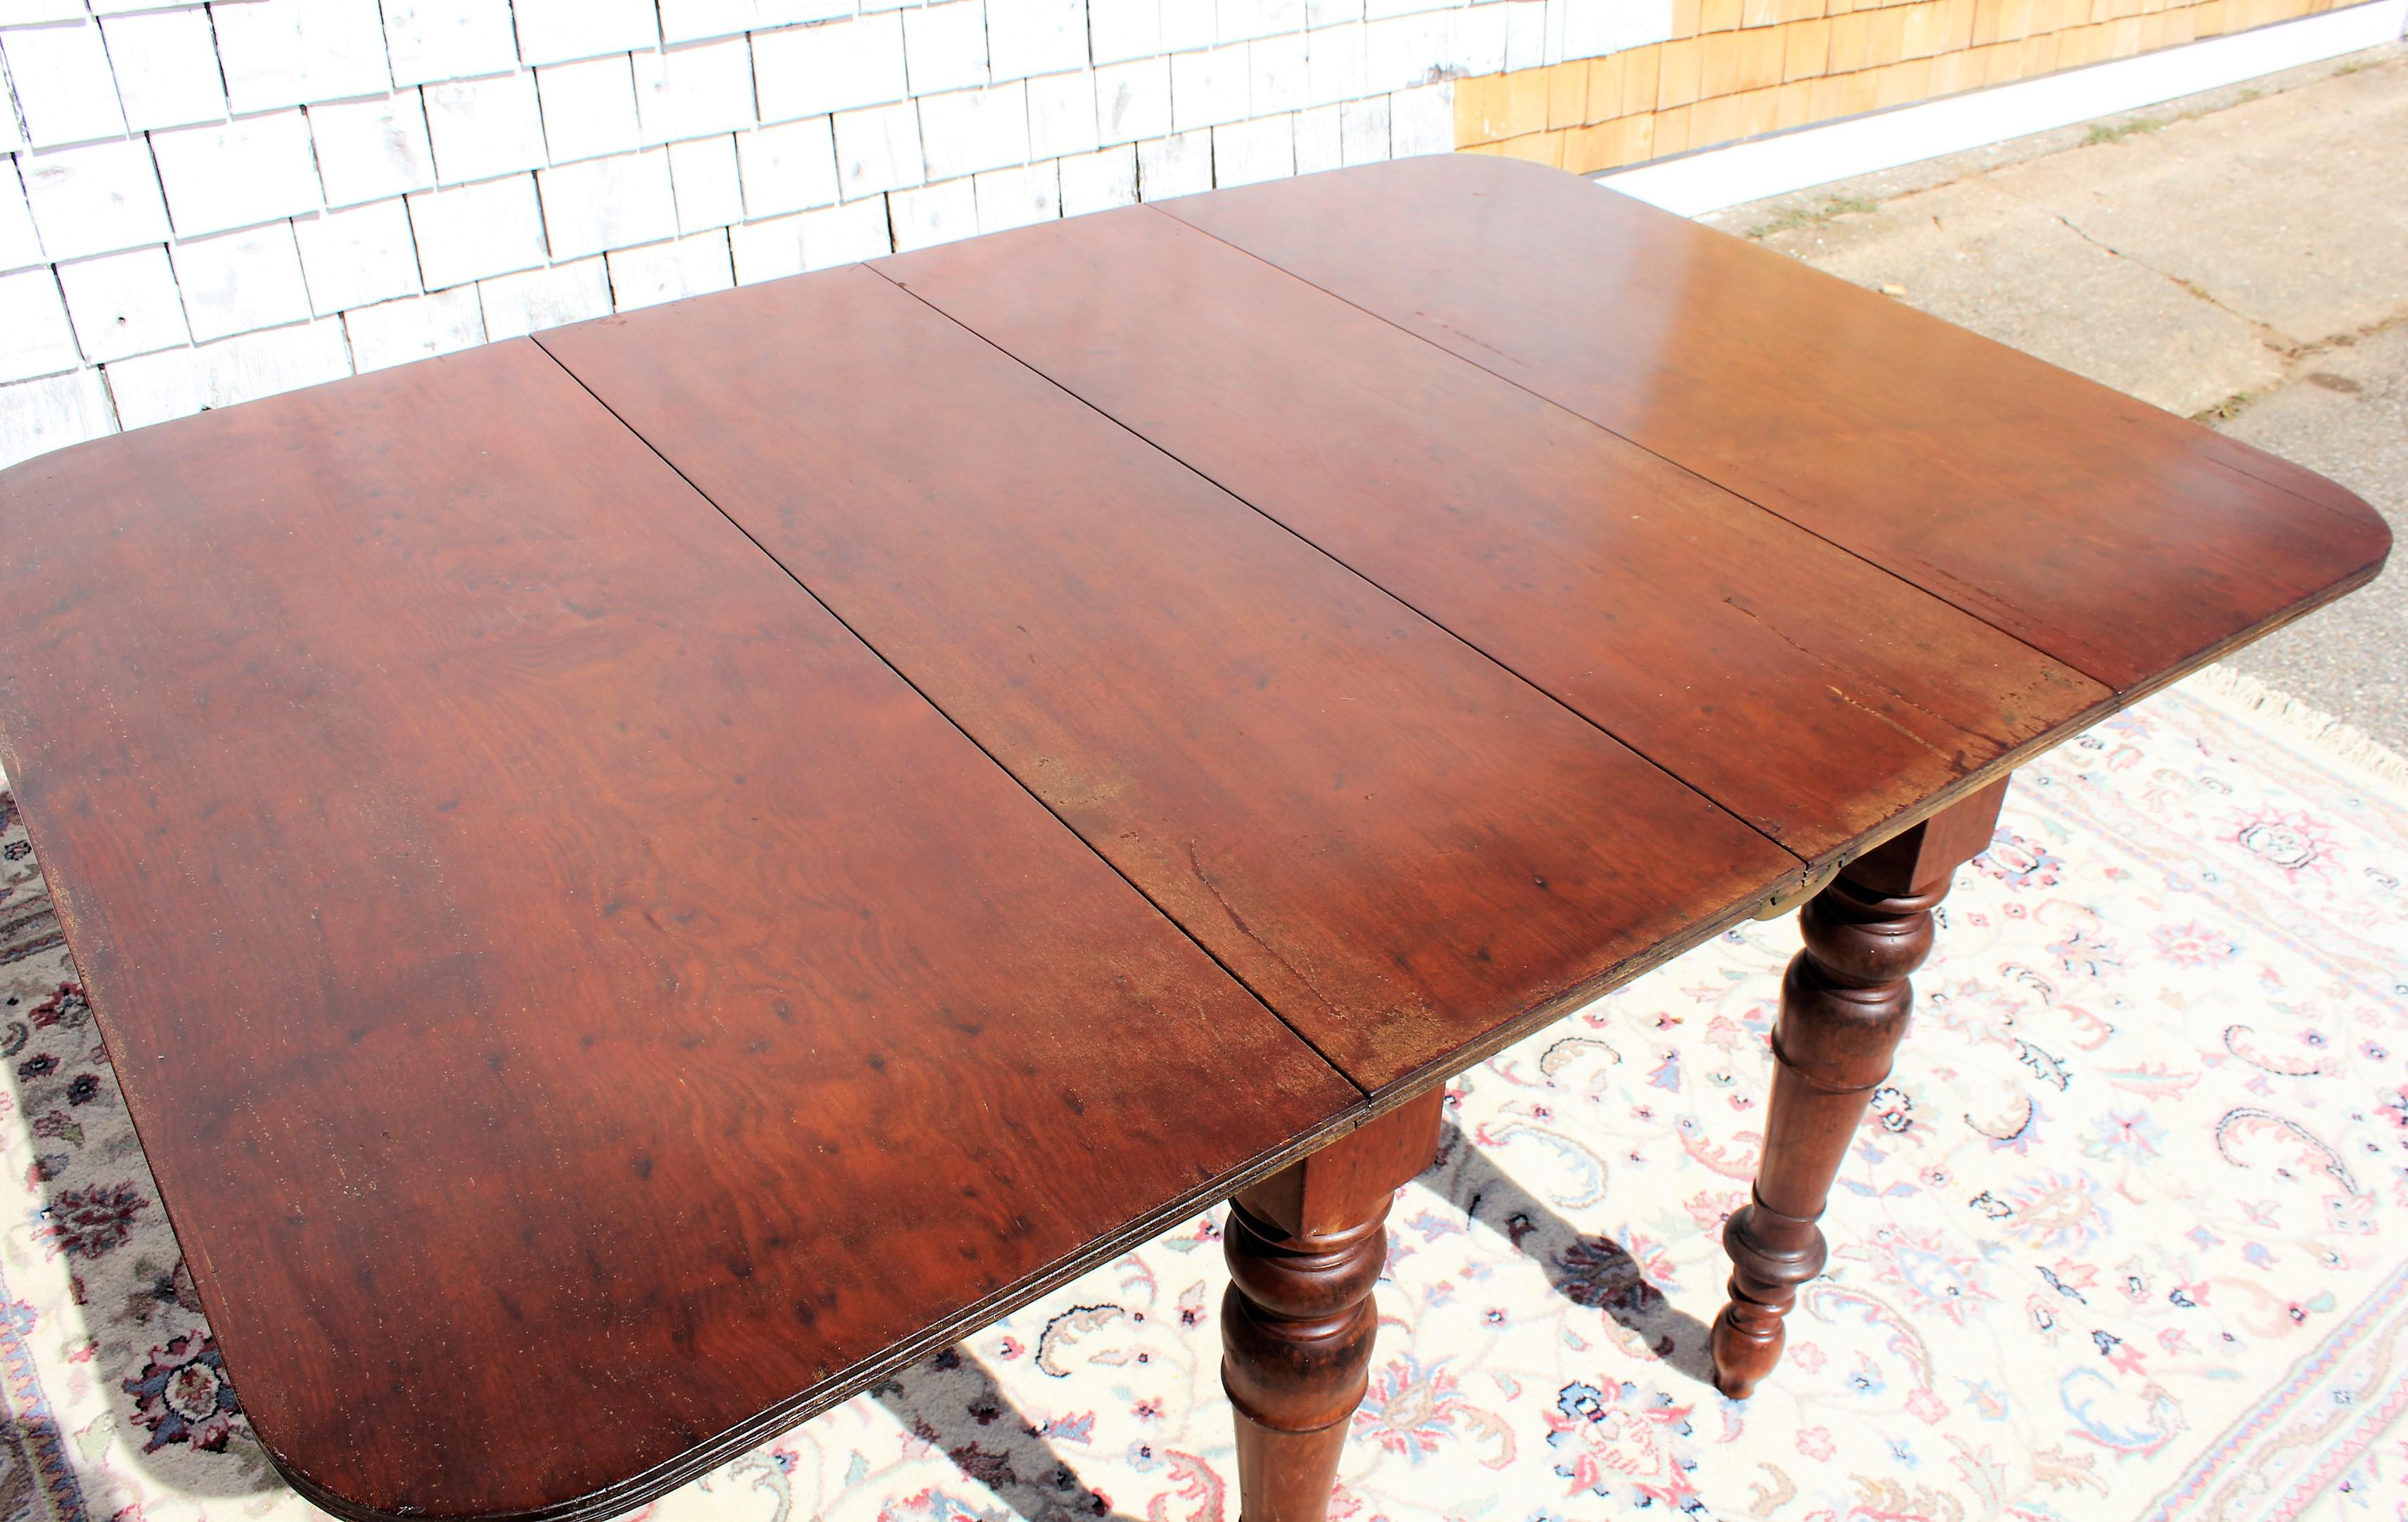 Ordinaire Antique English Mahogany Dining Farm Table Turned Legs For Sale   Image 4  Of 13